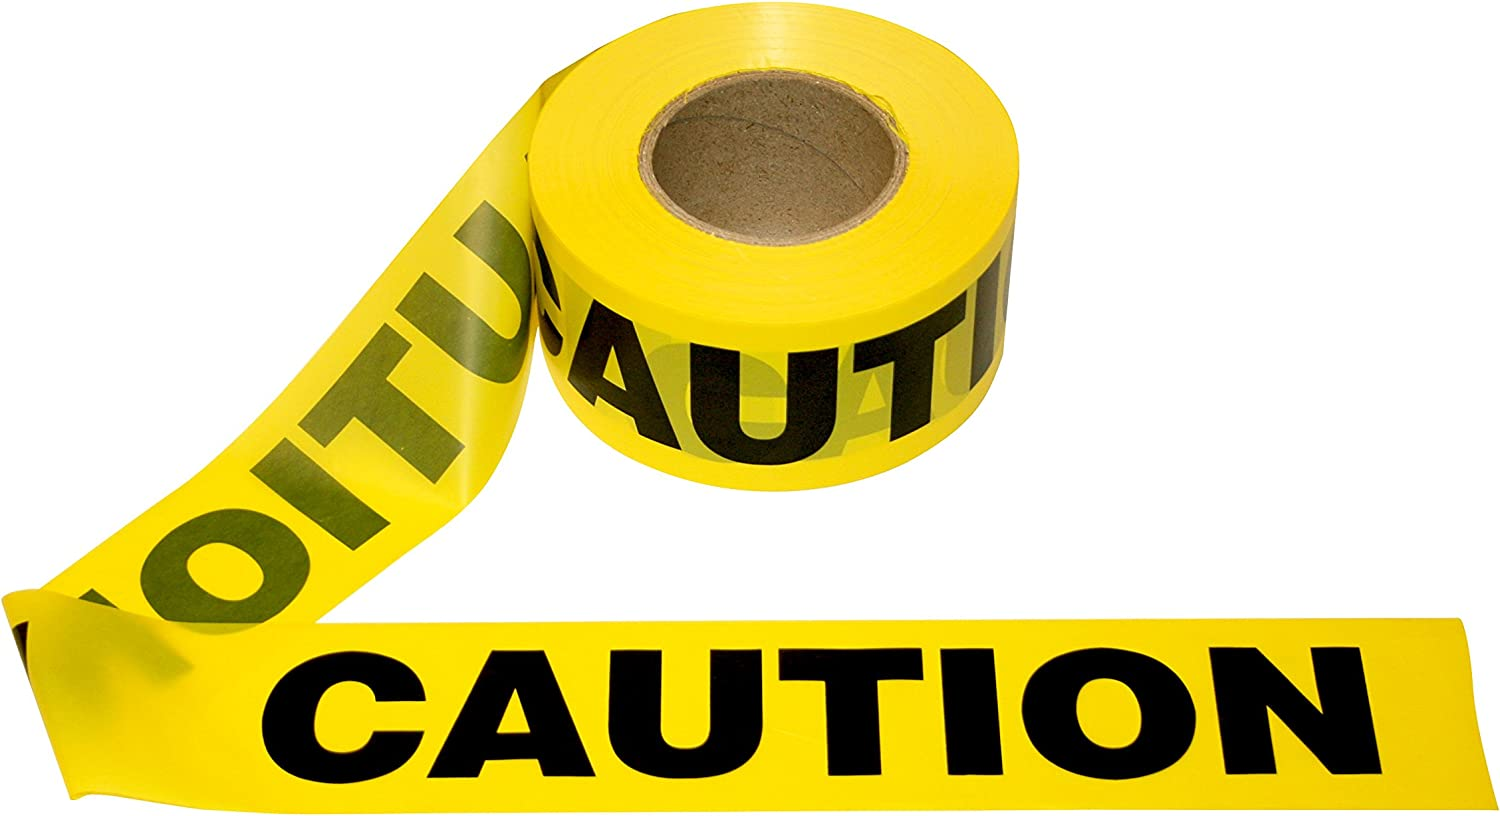 """Cordova Safety Products Pro Pack Caution Barricade Tape - Set of 12 Rolls - Each Roll Measures 3"""" x 1000' - Yellow (T15101)"""